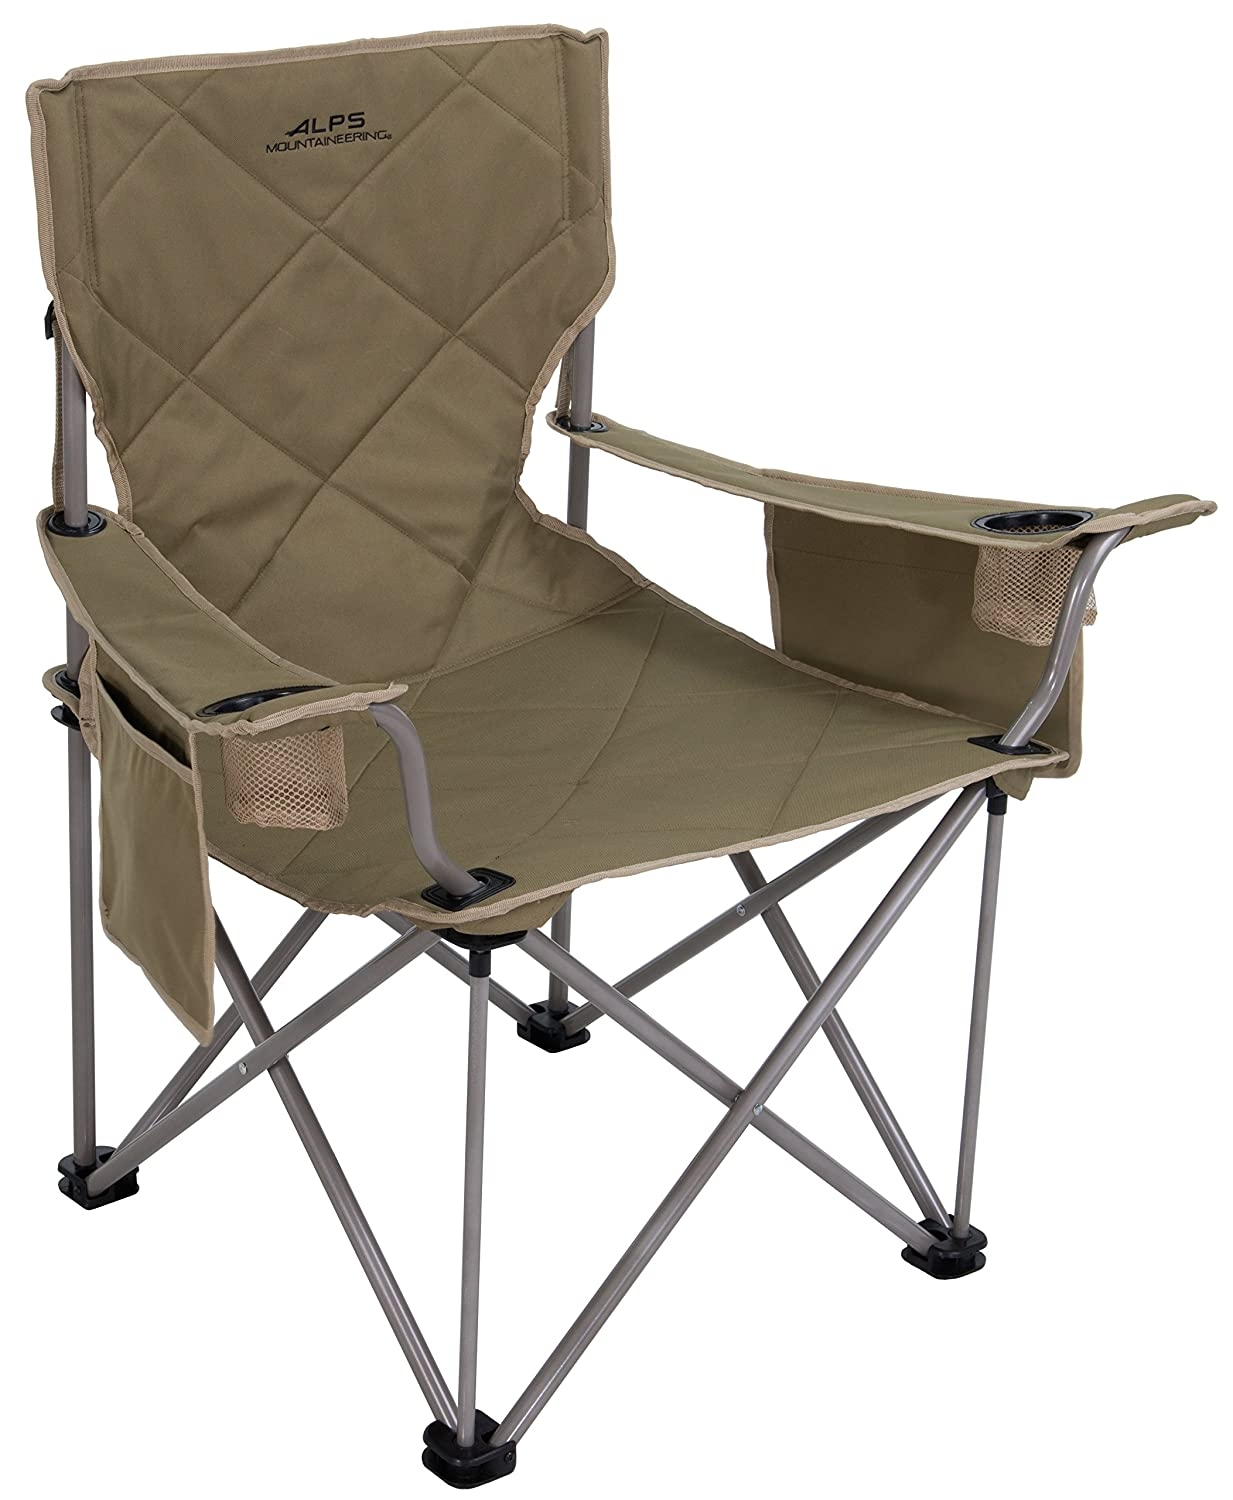 ALPS Mountaineering King Kong Portable Folding Chair